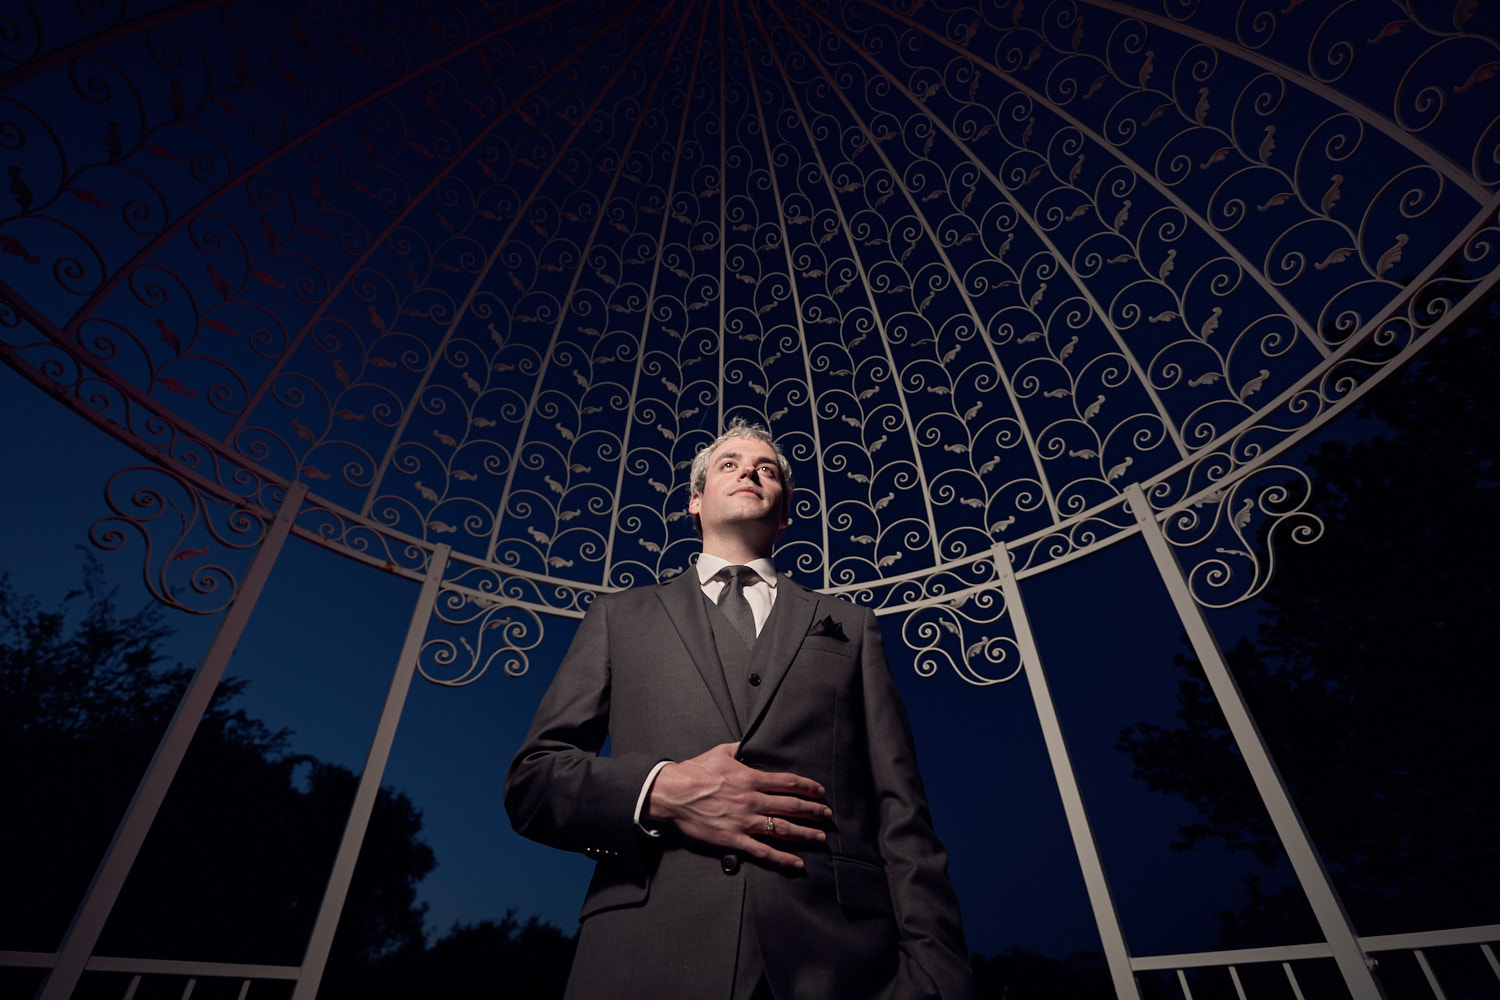 Solo portrait of the Groom under the Gazeebo.